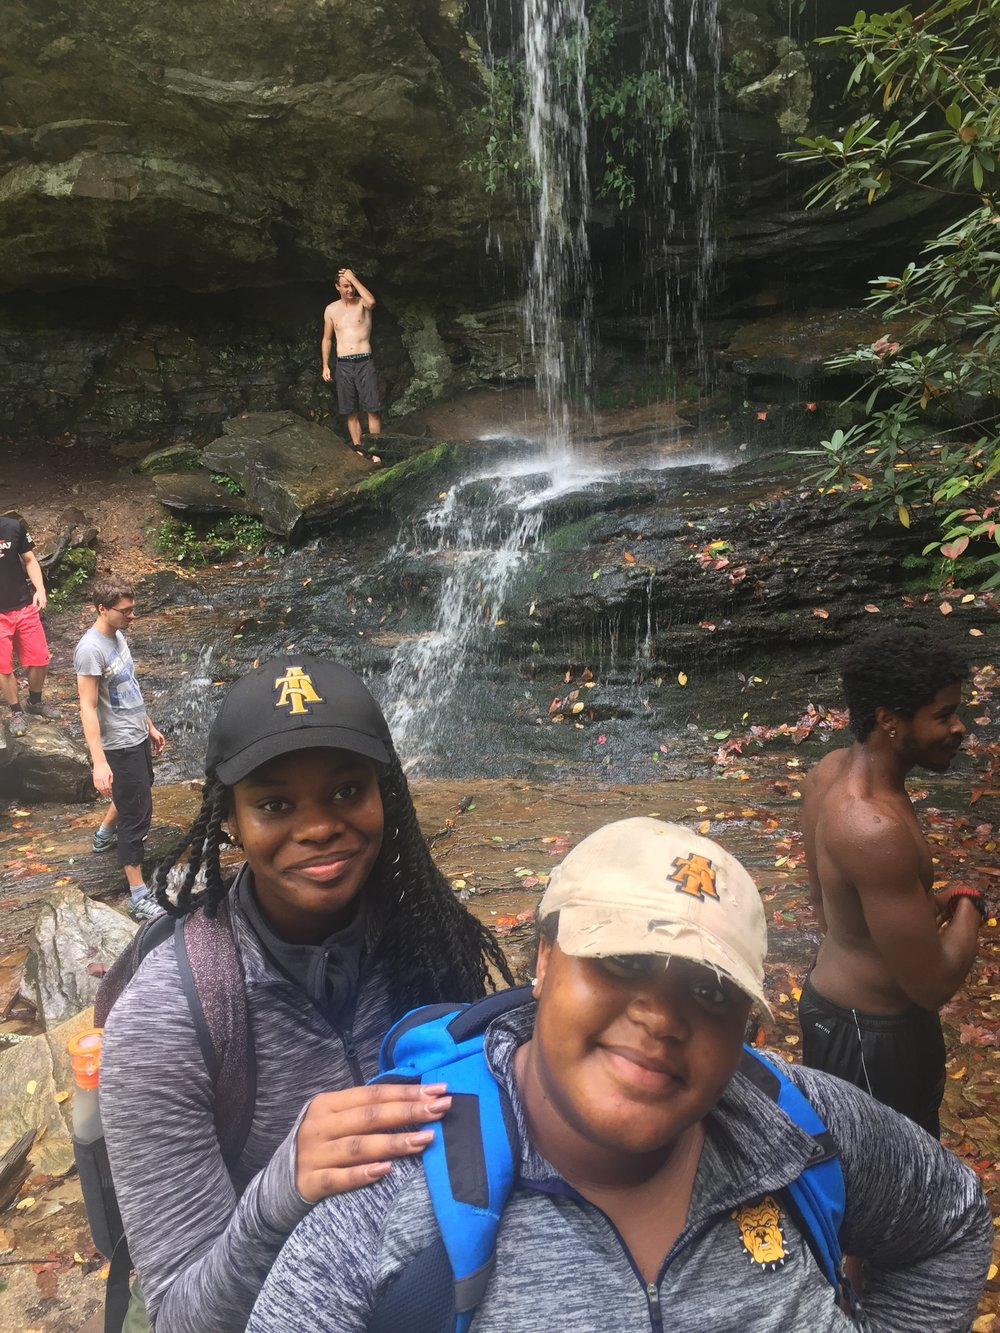 Hiking Looking Glass Falls at Hanging Rock State Park, Danbury, NC